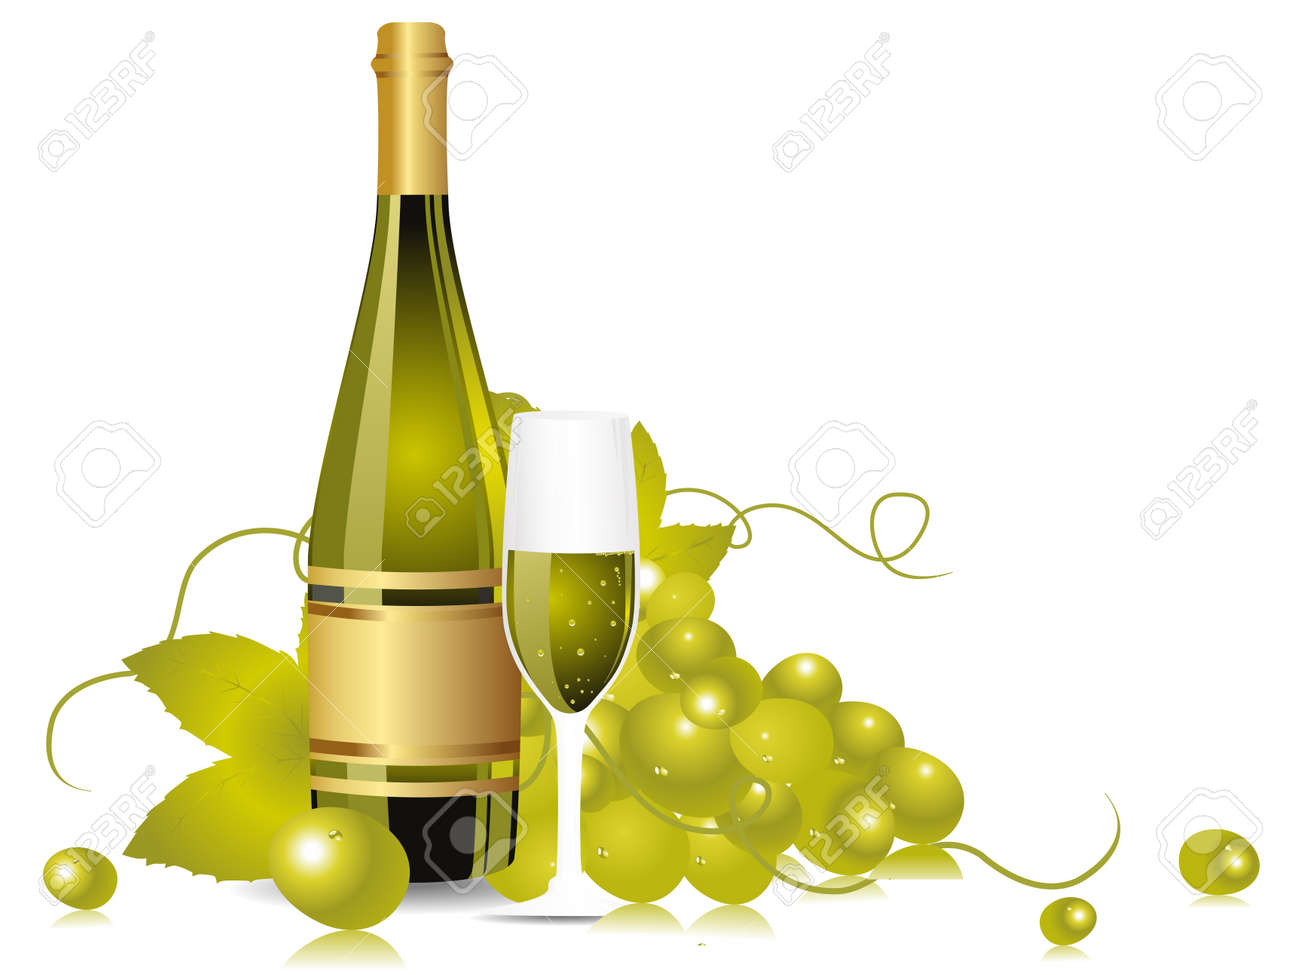 champange bottle, glass with grapesvines on white background Stock Vector - 11785641